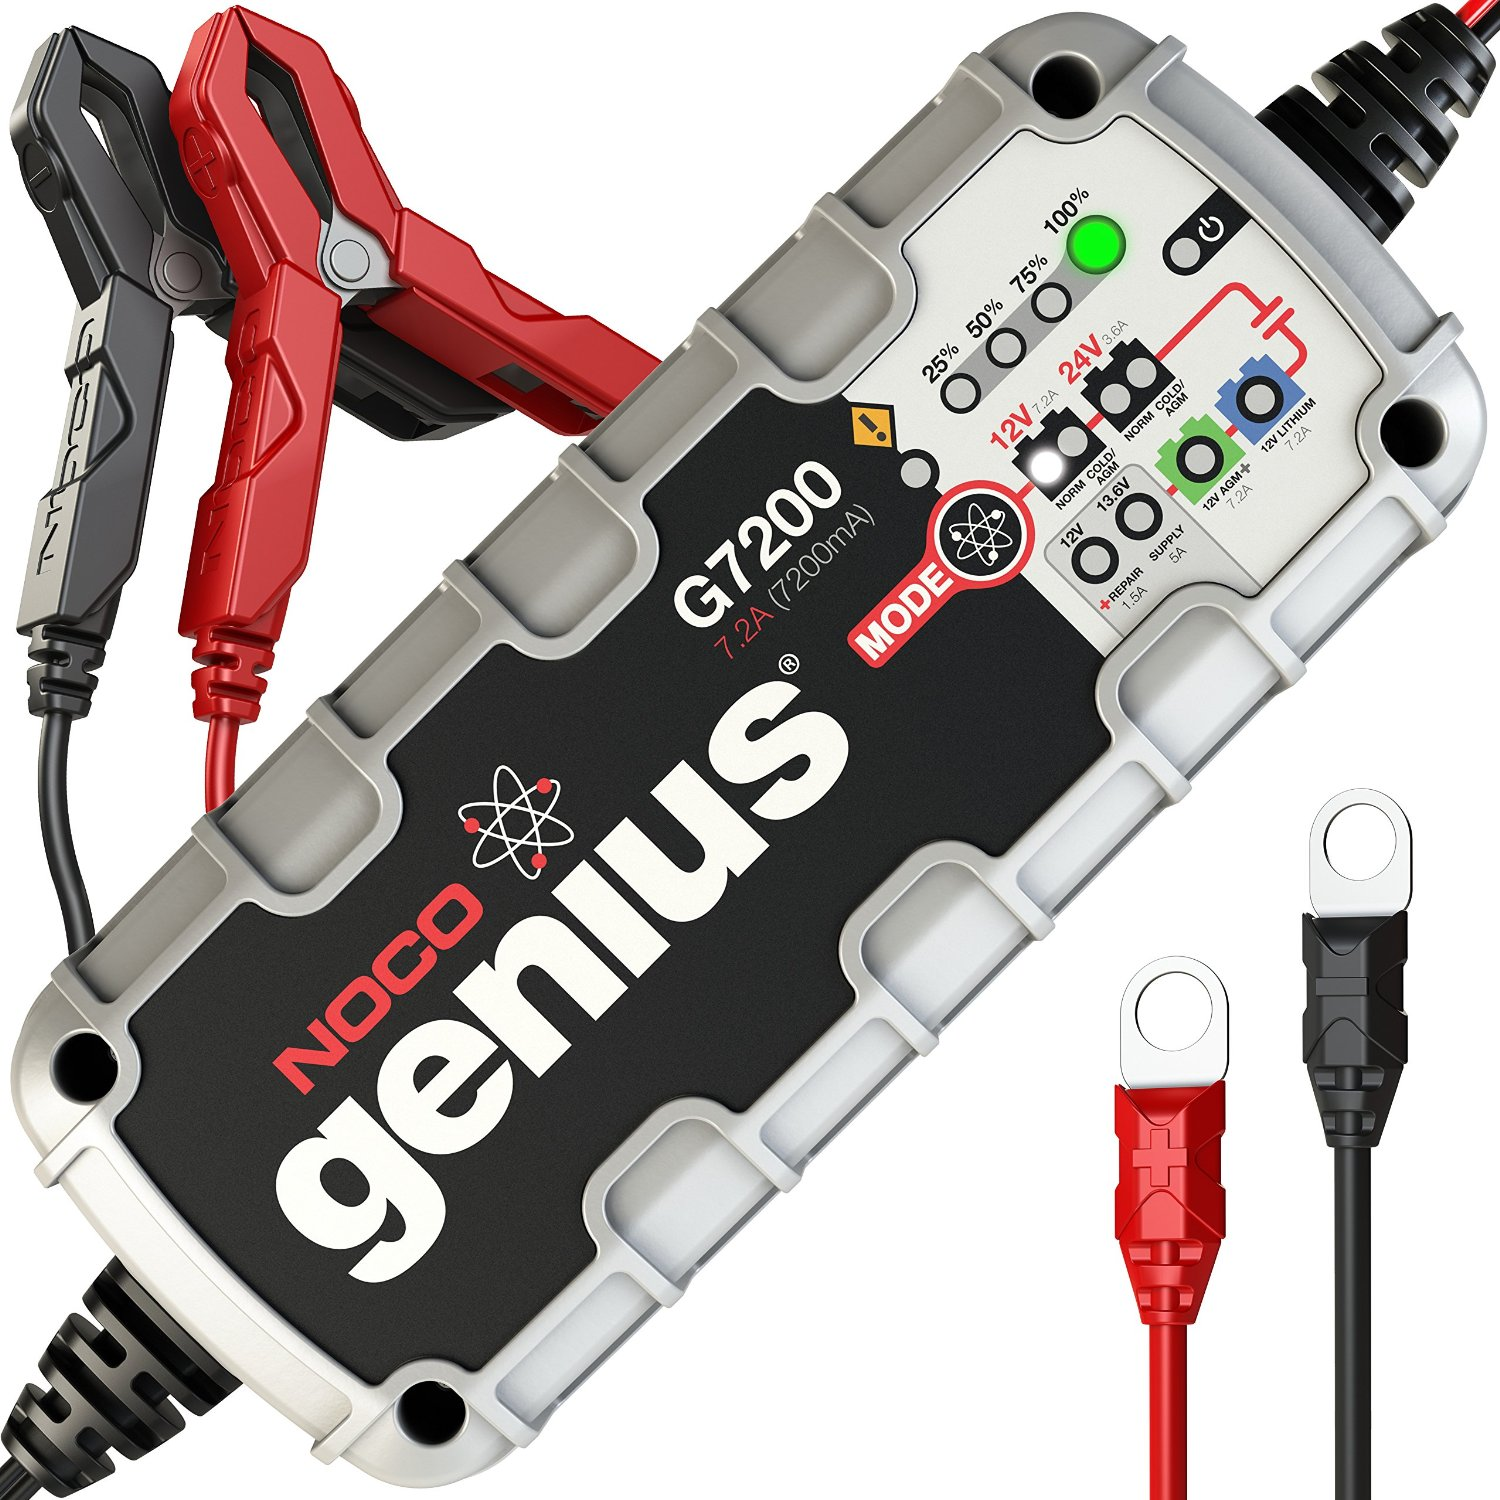 7200mAH GENIUS BATTERY CHARGER